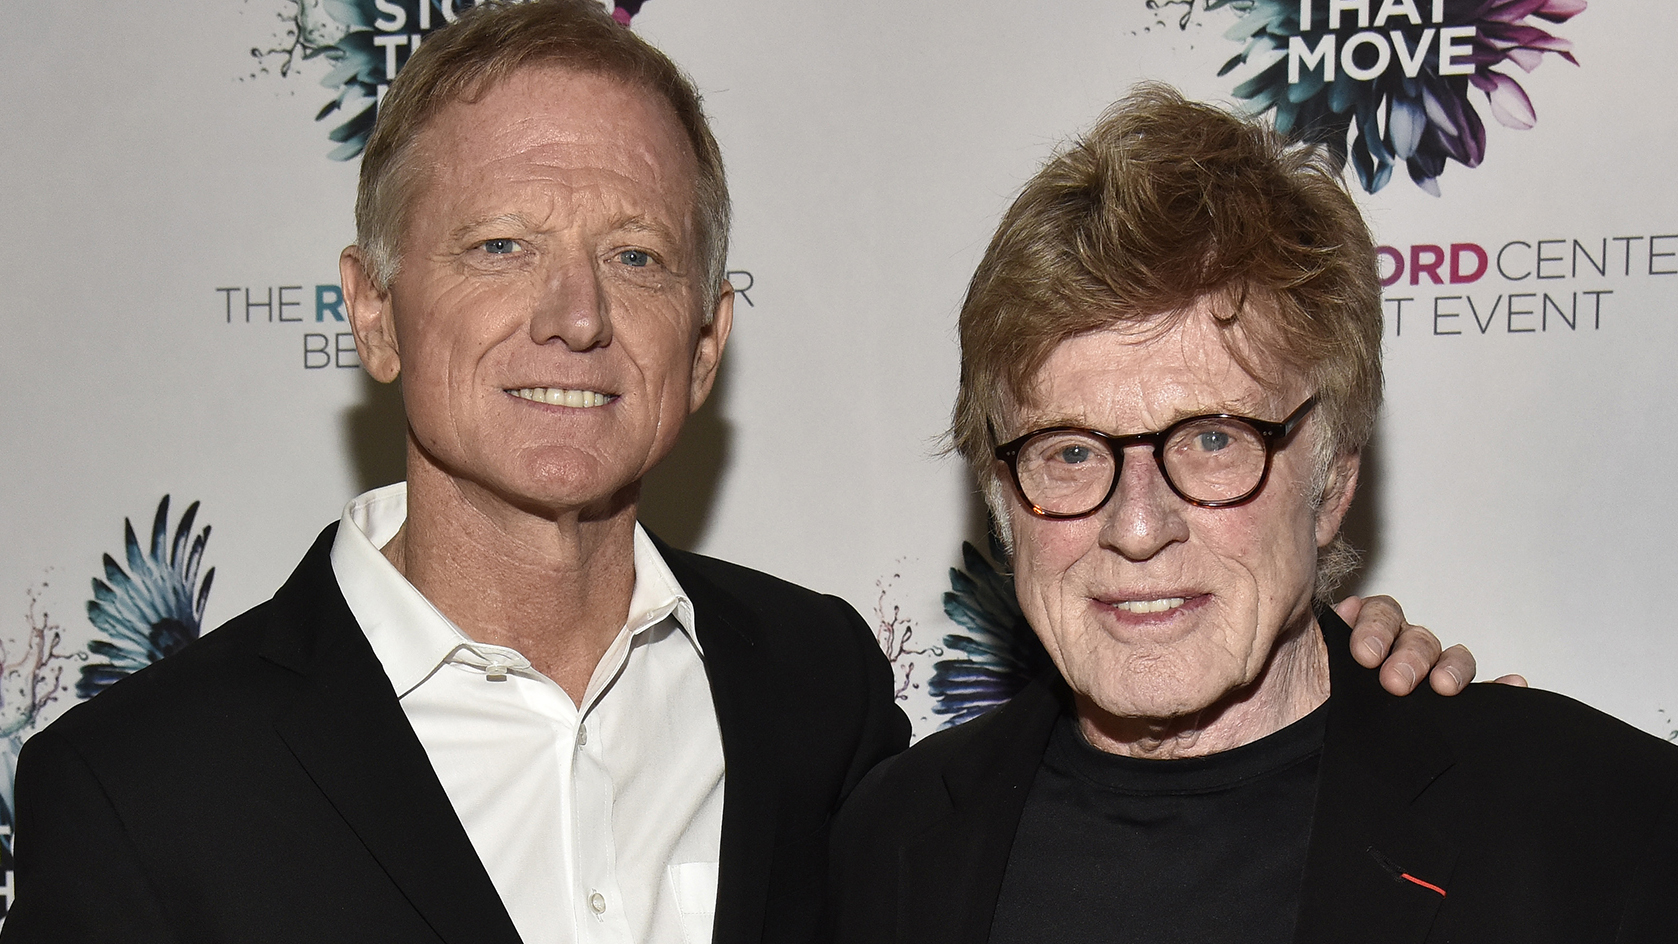 Robert Redford's son, James Redford, dead at 58 - Fox News